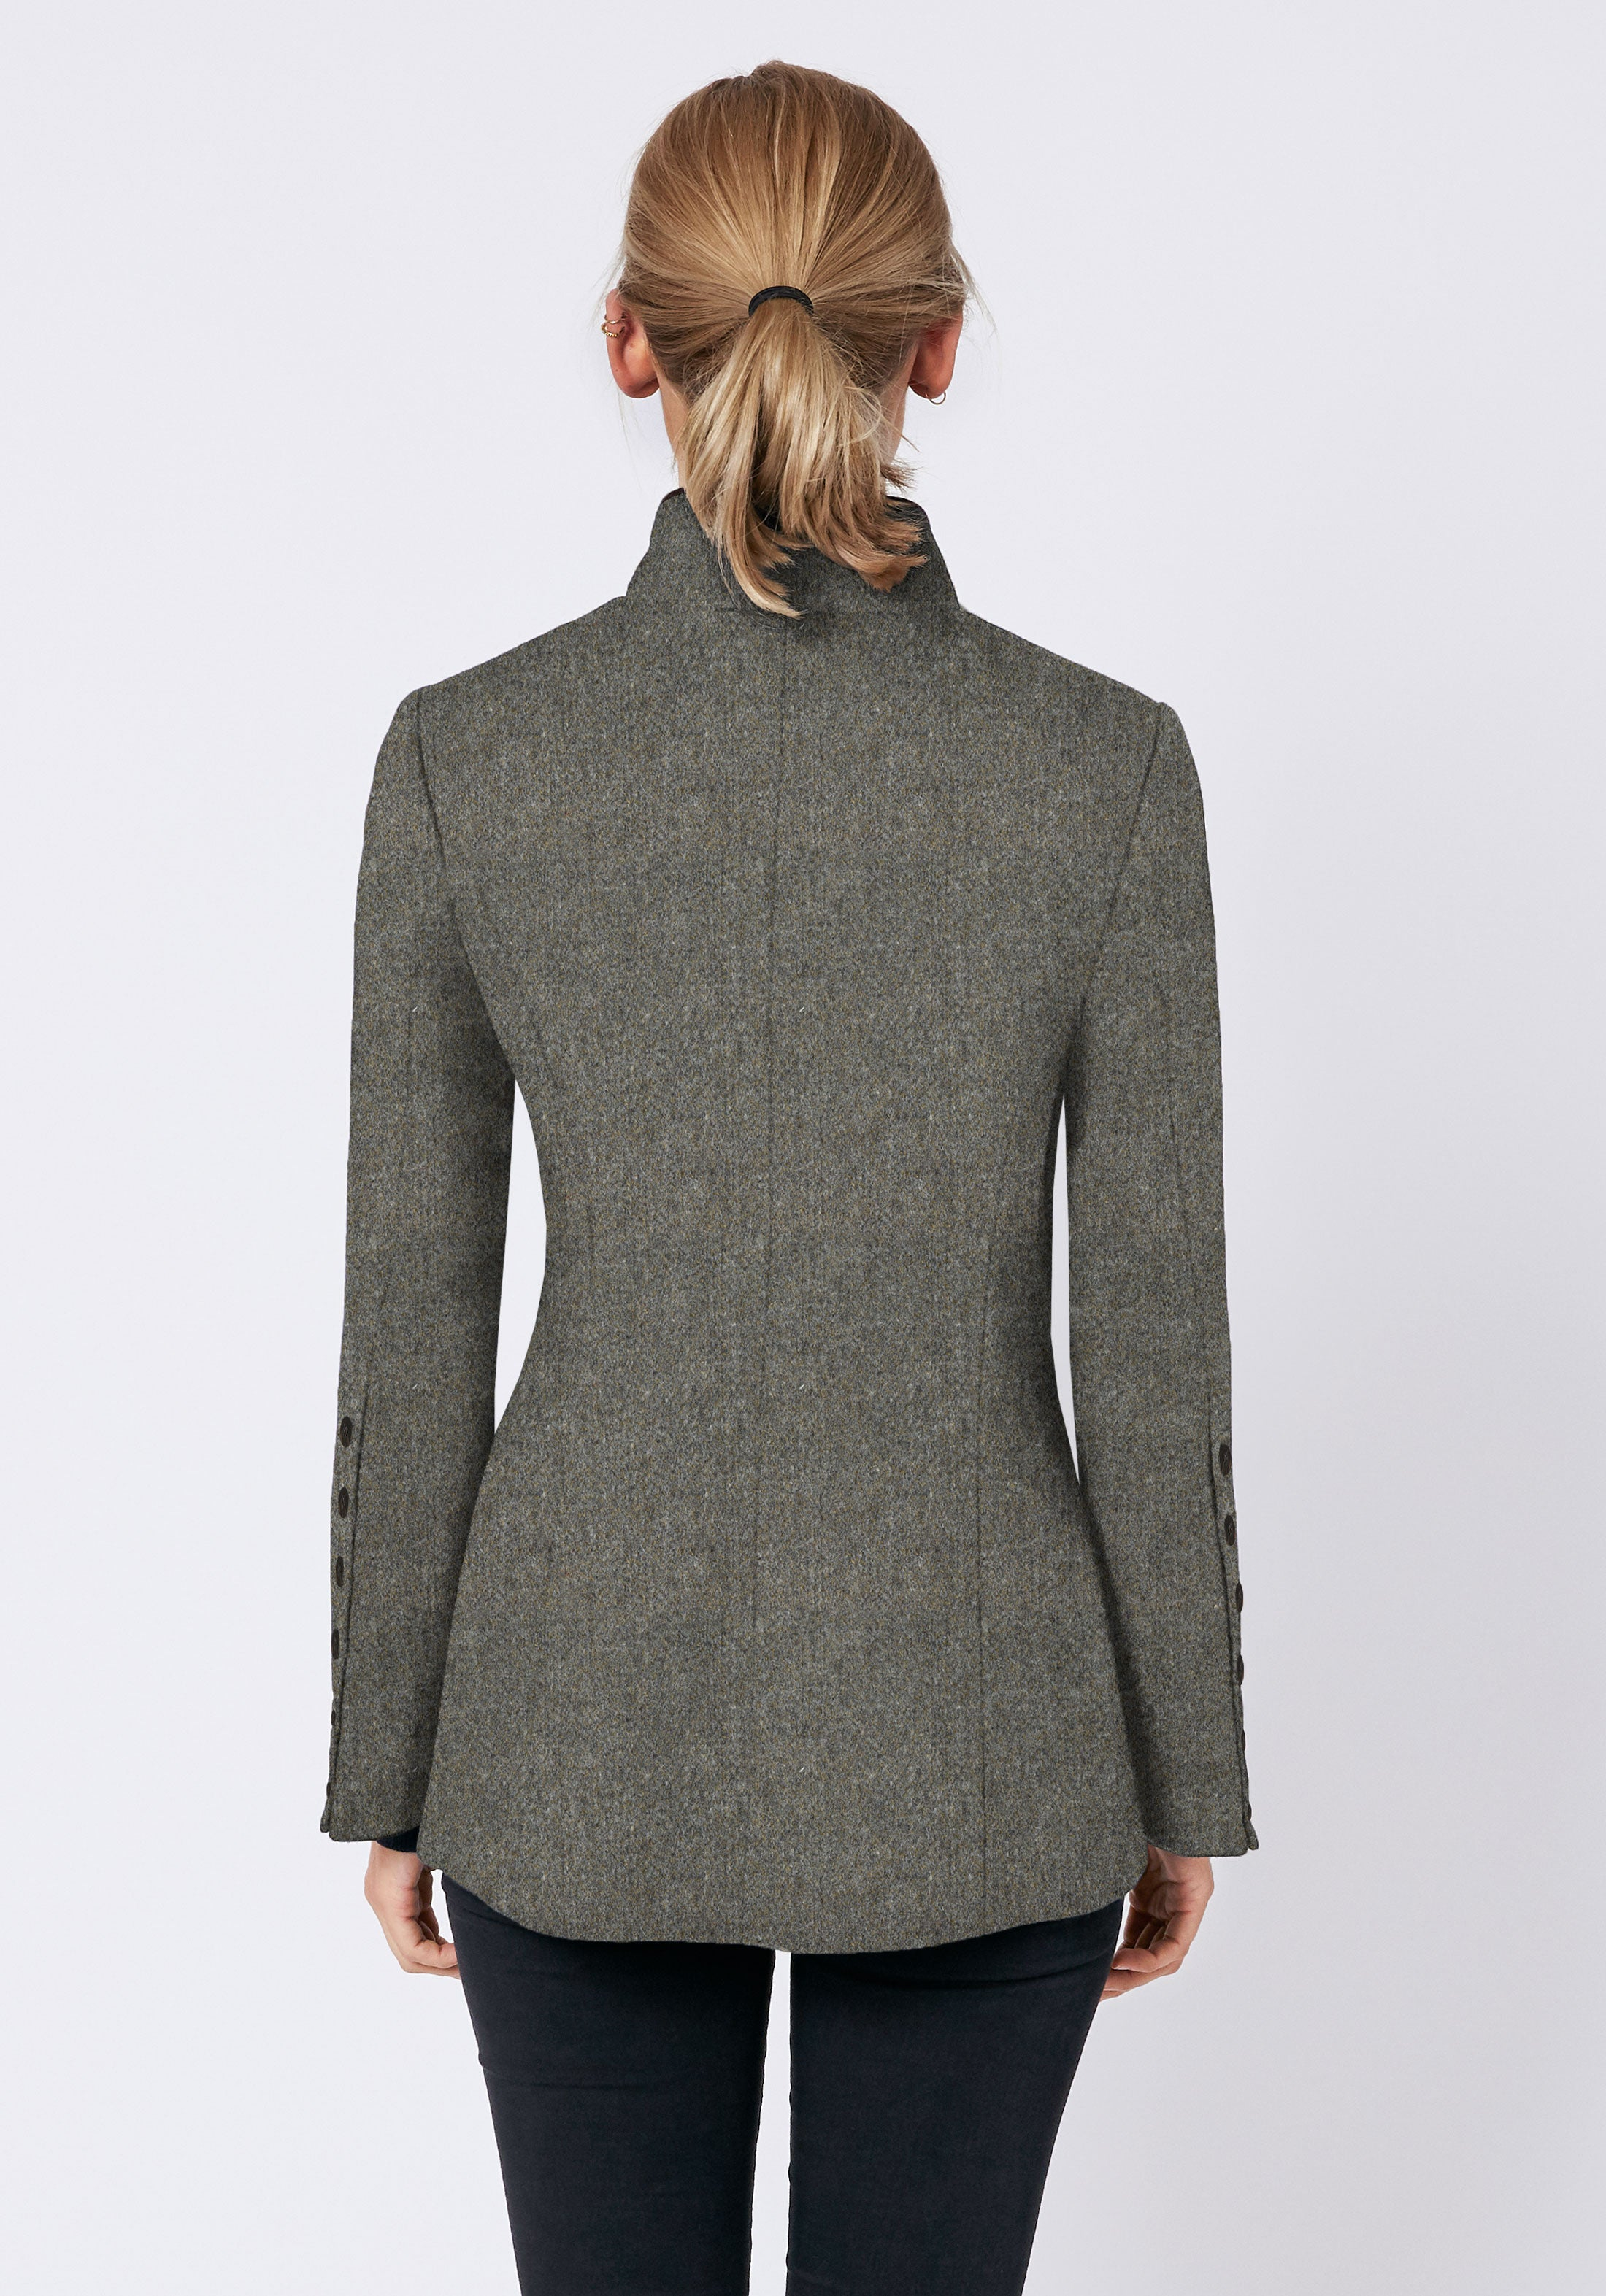 Patmos Jacket in Warm Grey